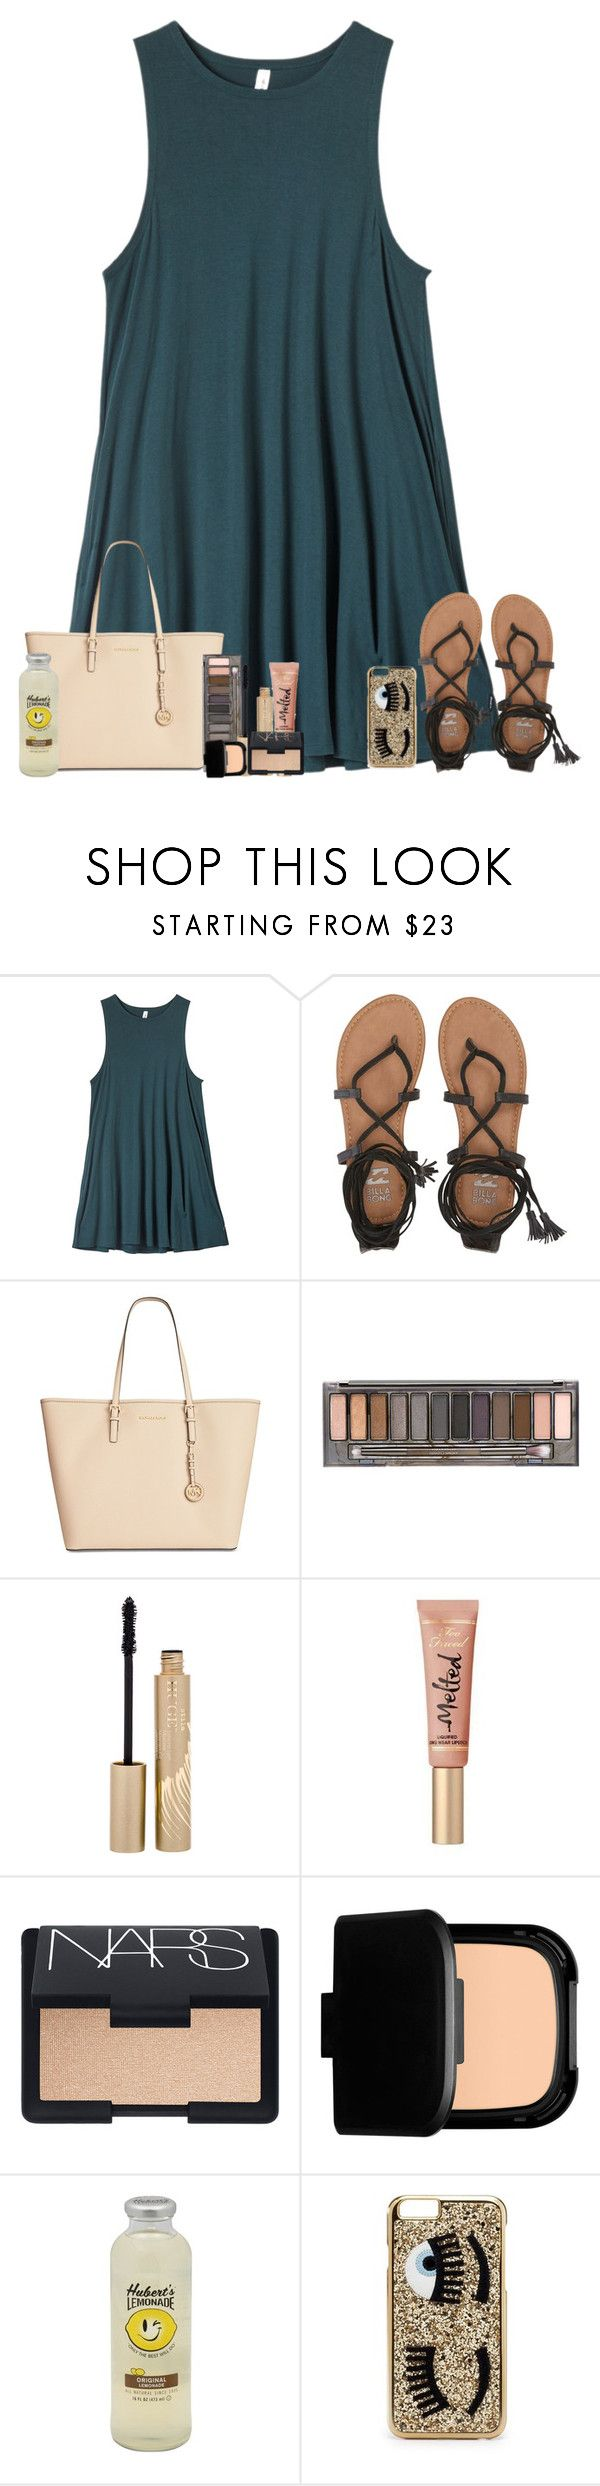 """Promise I'll Be The Cure"" by theafergusma ❤ liked on Polyvore featuring RVCA, Billabong, Michael Kors, Urban Decay, Stila, Too Faced Cosmetics, NARS Cosmetics and Chiara Ferragni"